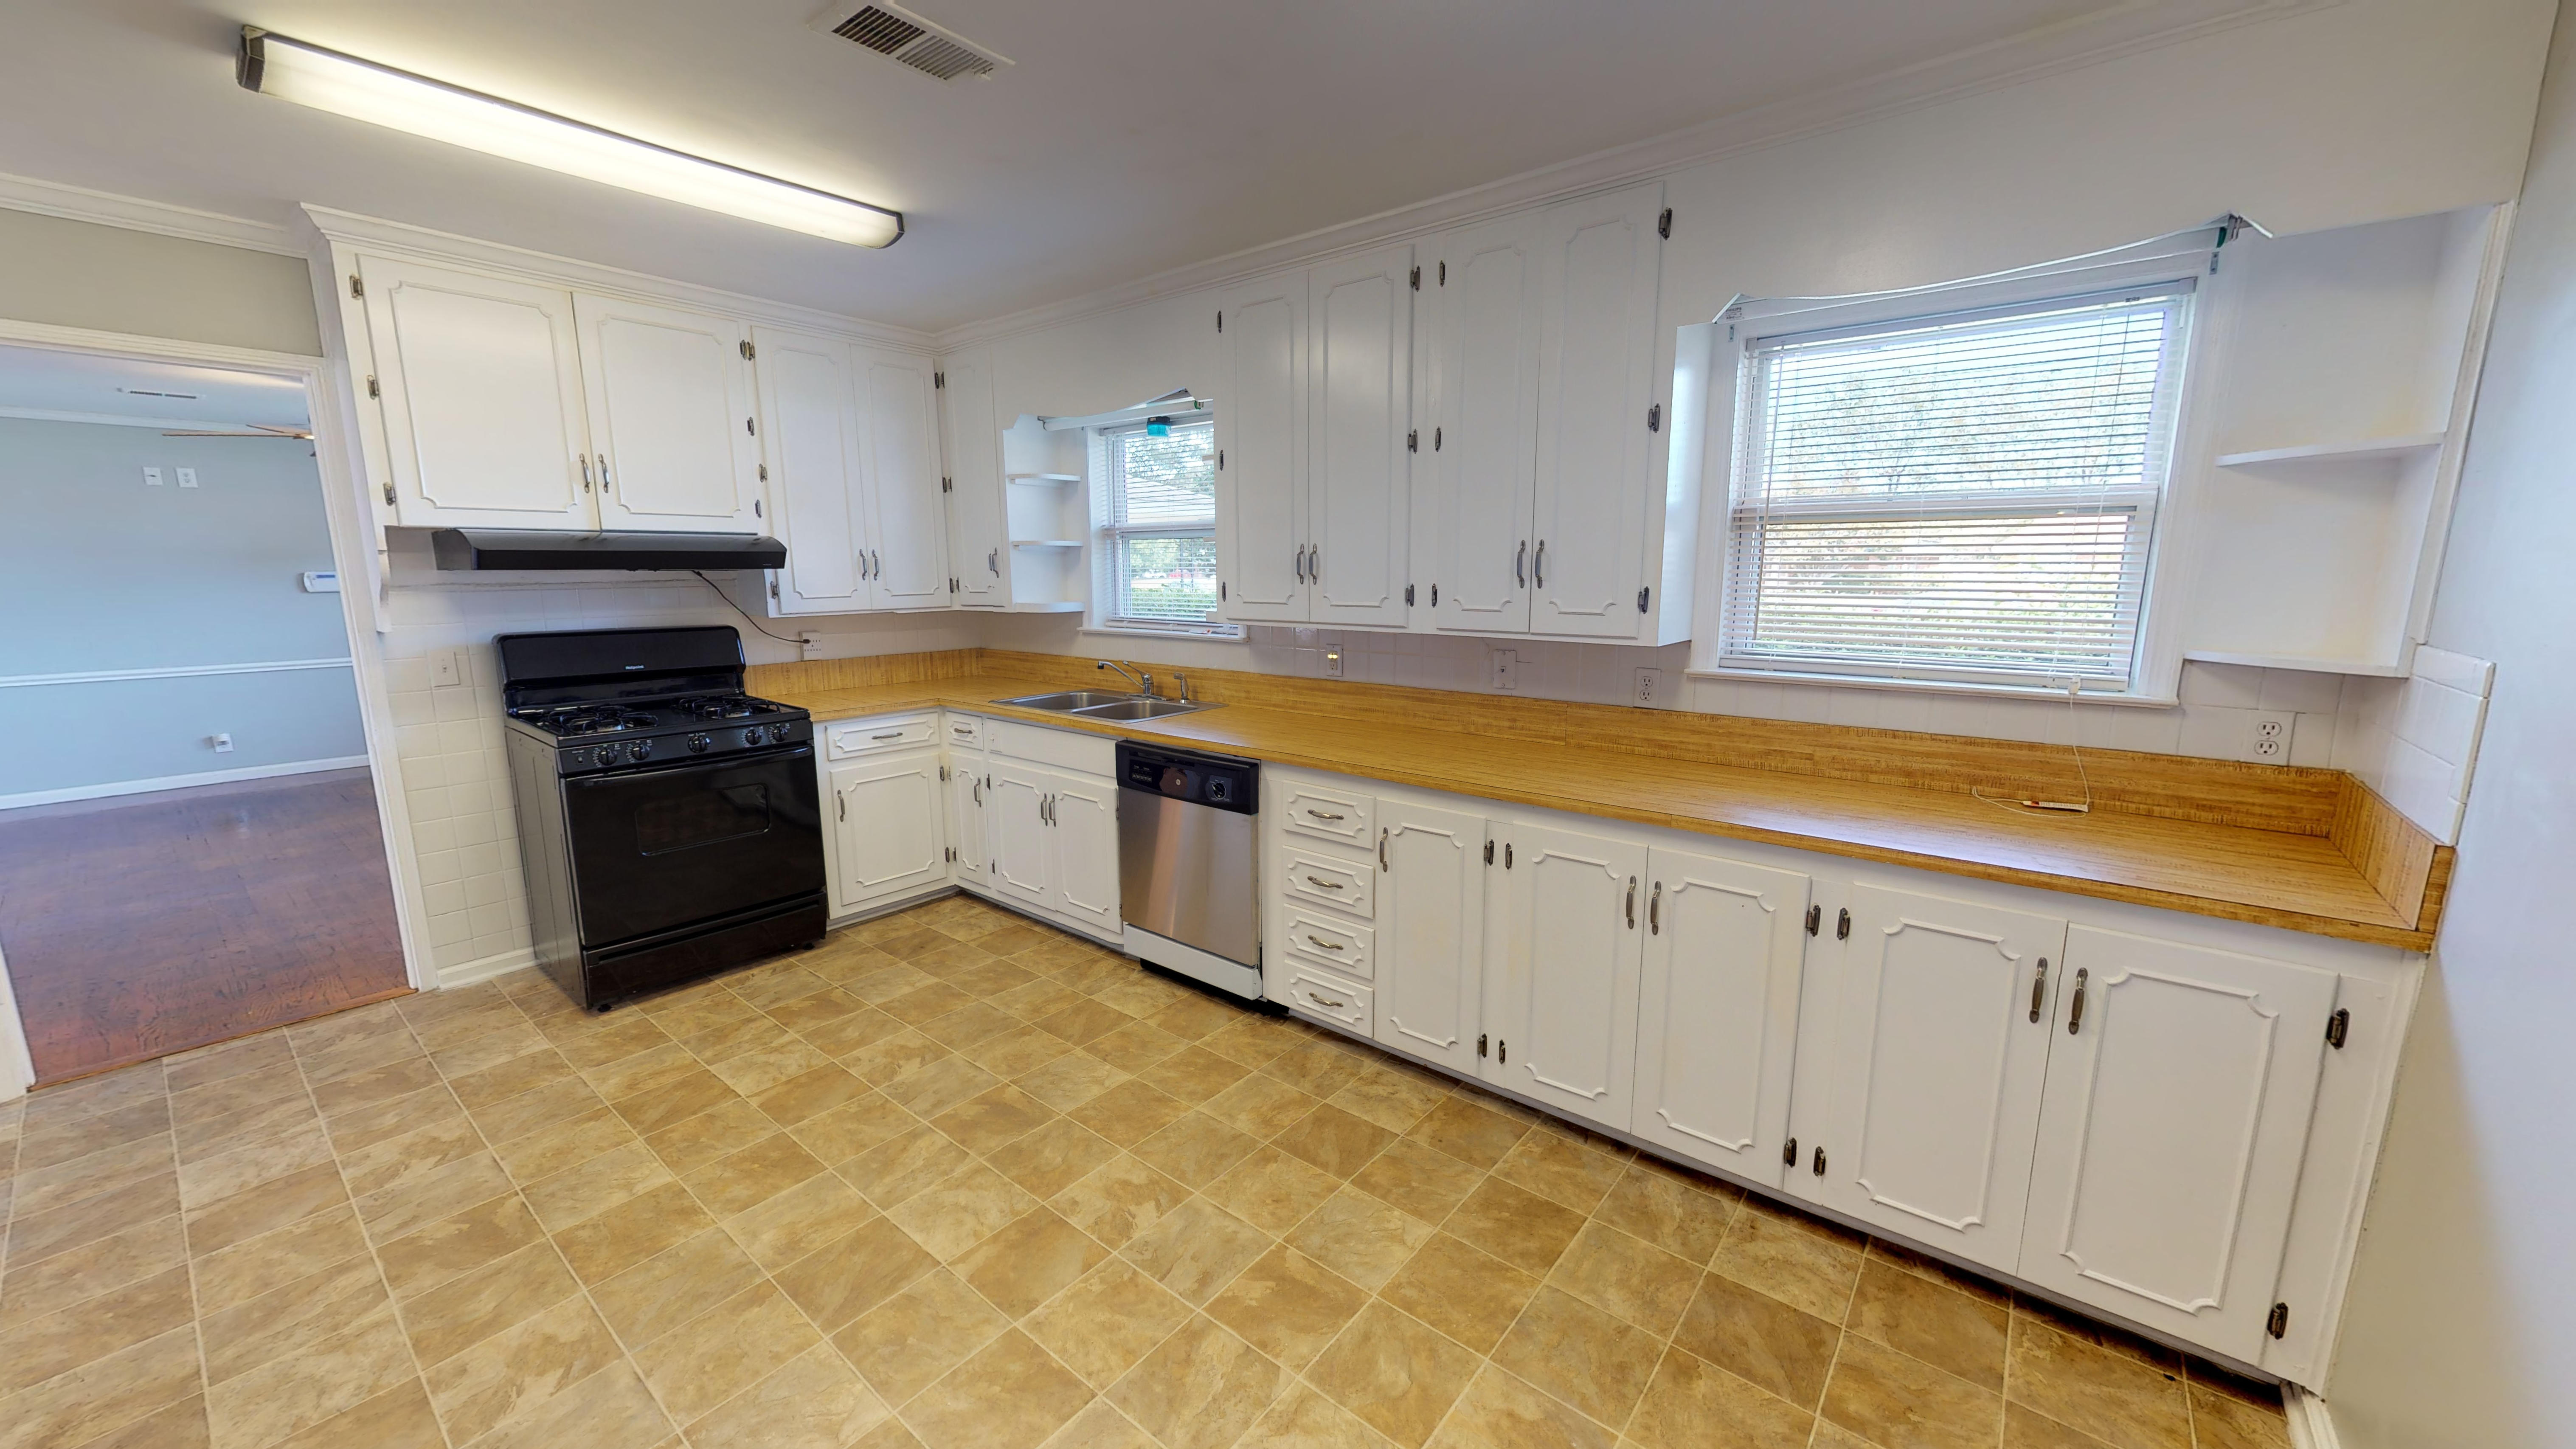 FOR RENT IN MONTGOMERY! 4 BED 2 BATH AT 2718 SWEETBRIAR ROAD